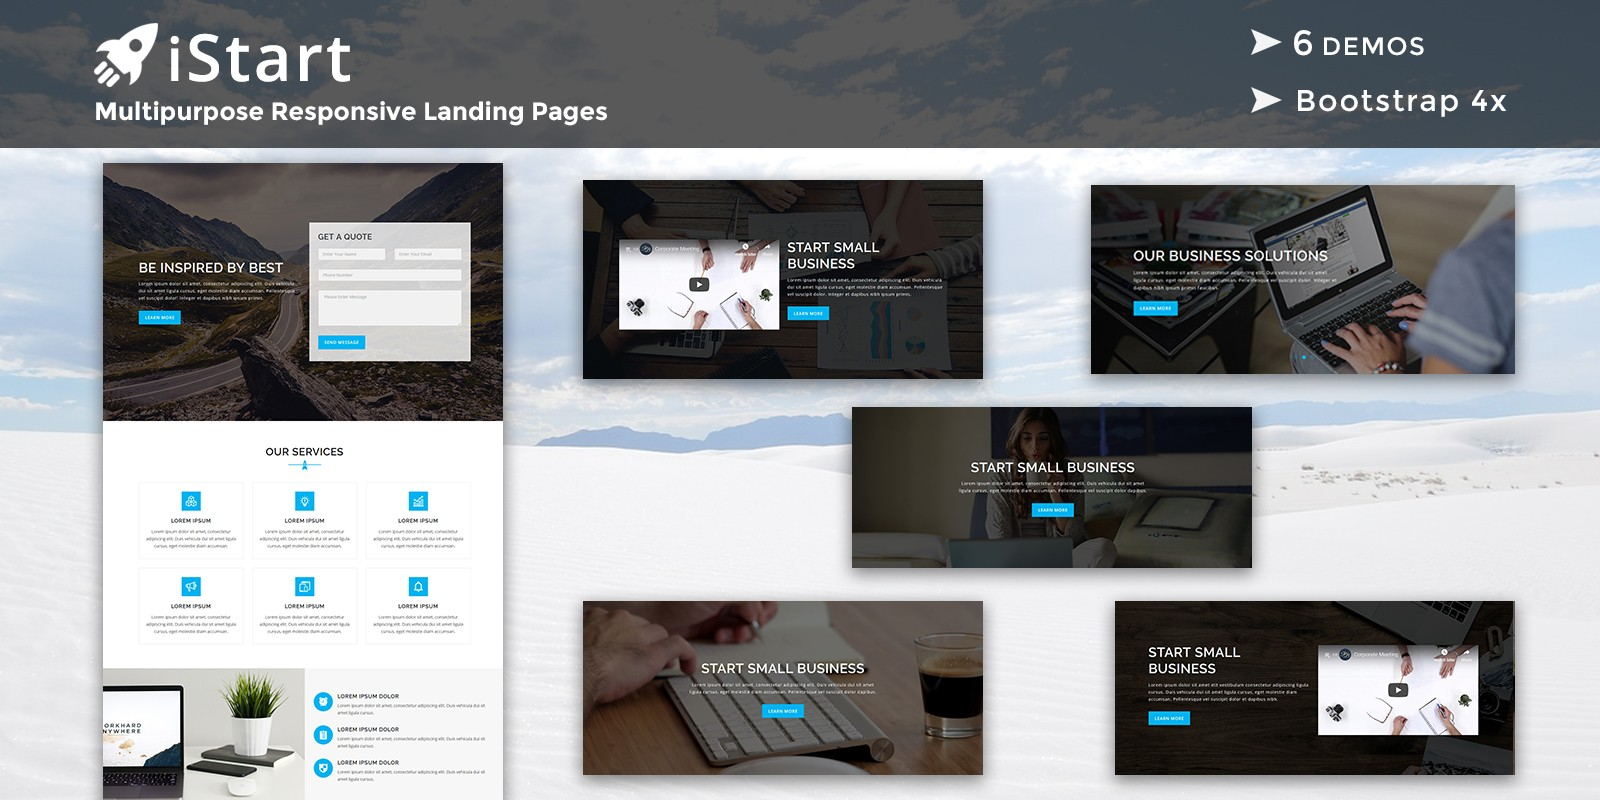 iStart - Responsive HTML Landing Pages